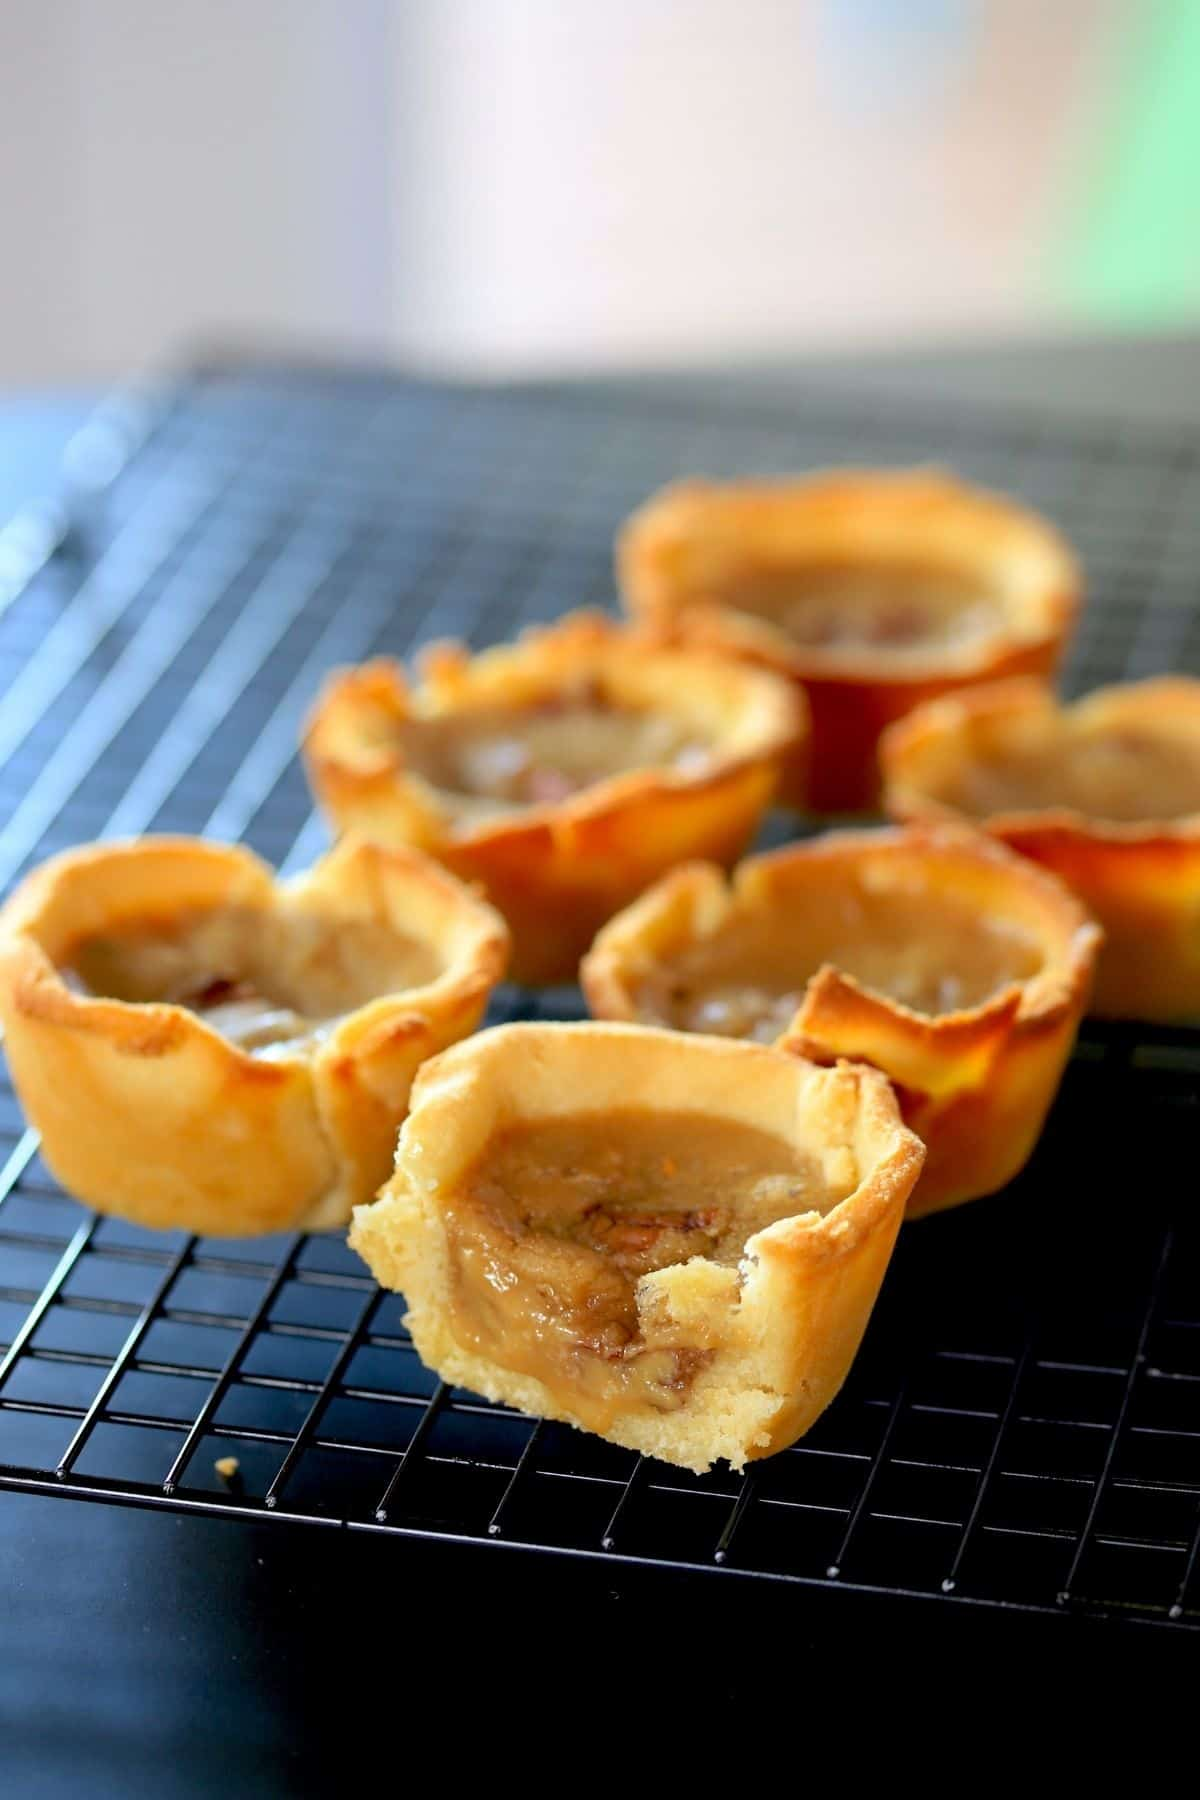 6 golden butter tarts with one sliced to show the gooey filling